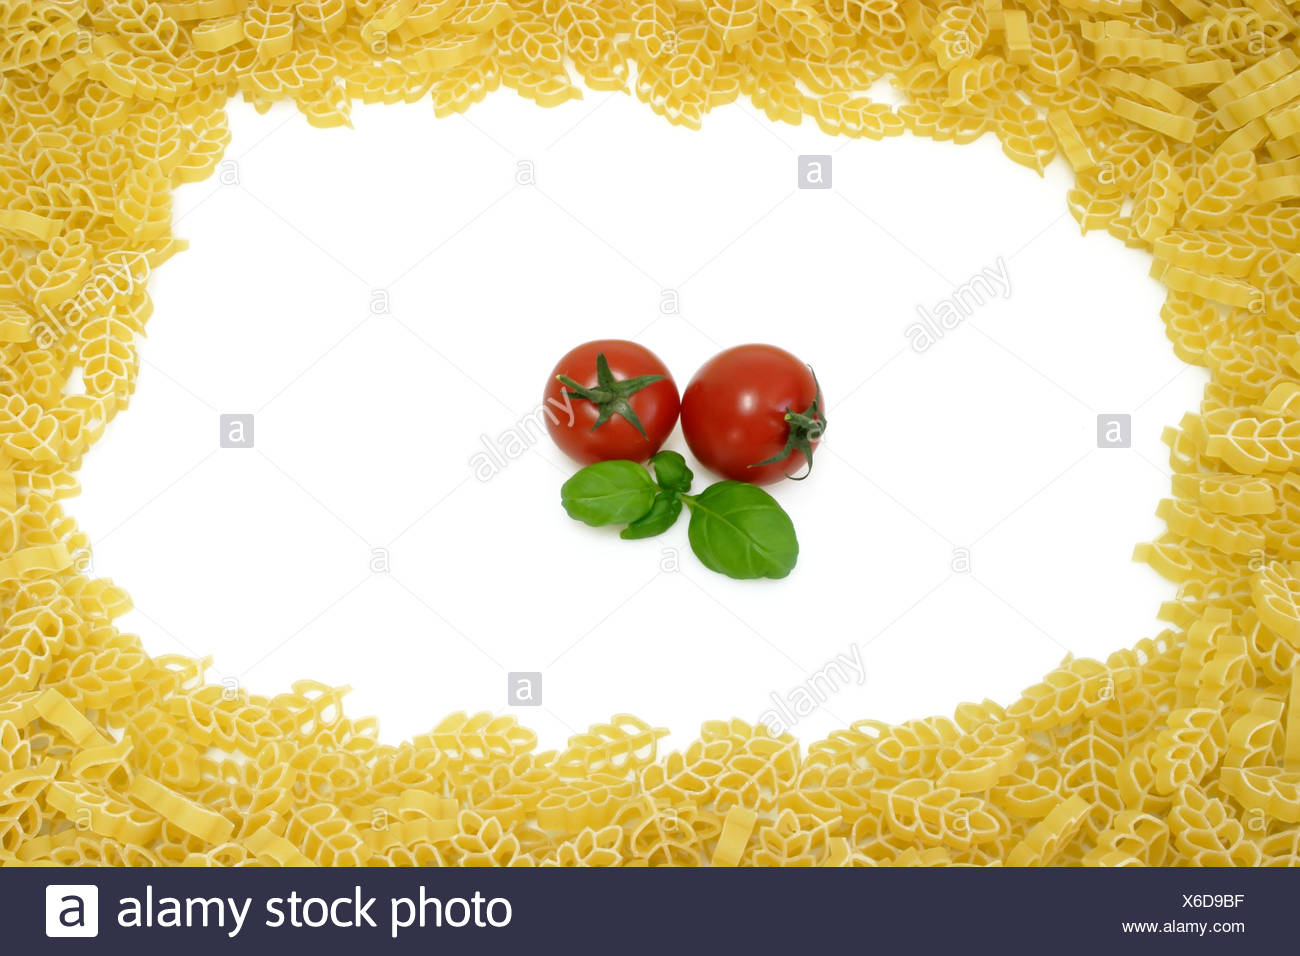 food aliment dainty - Stock Image